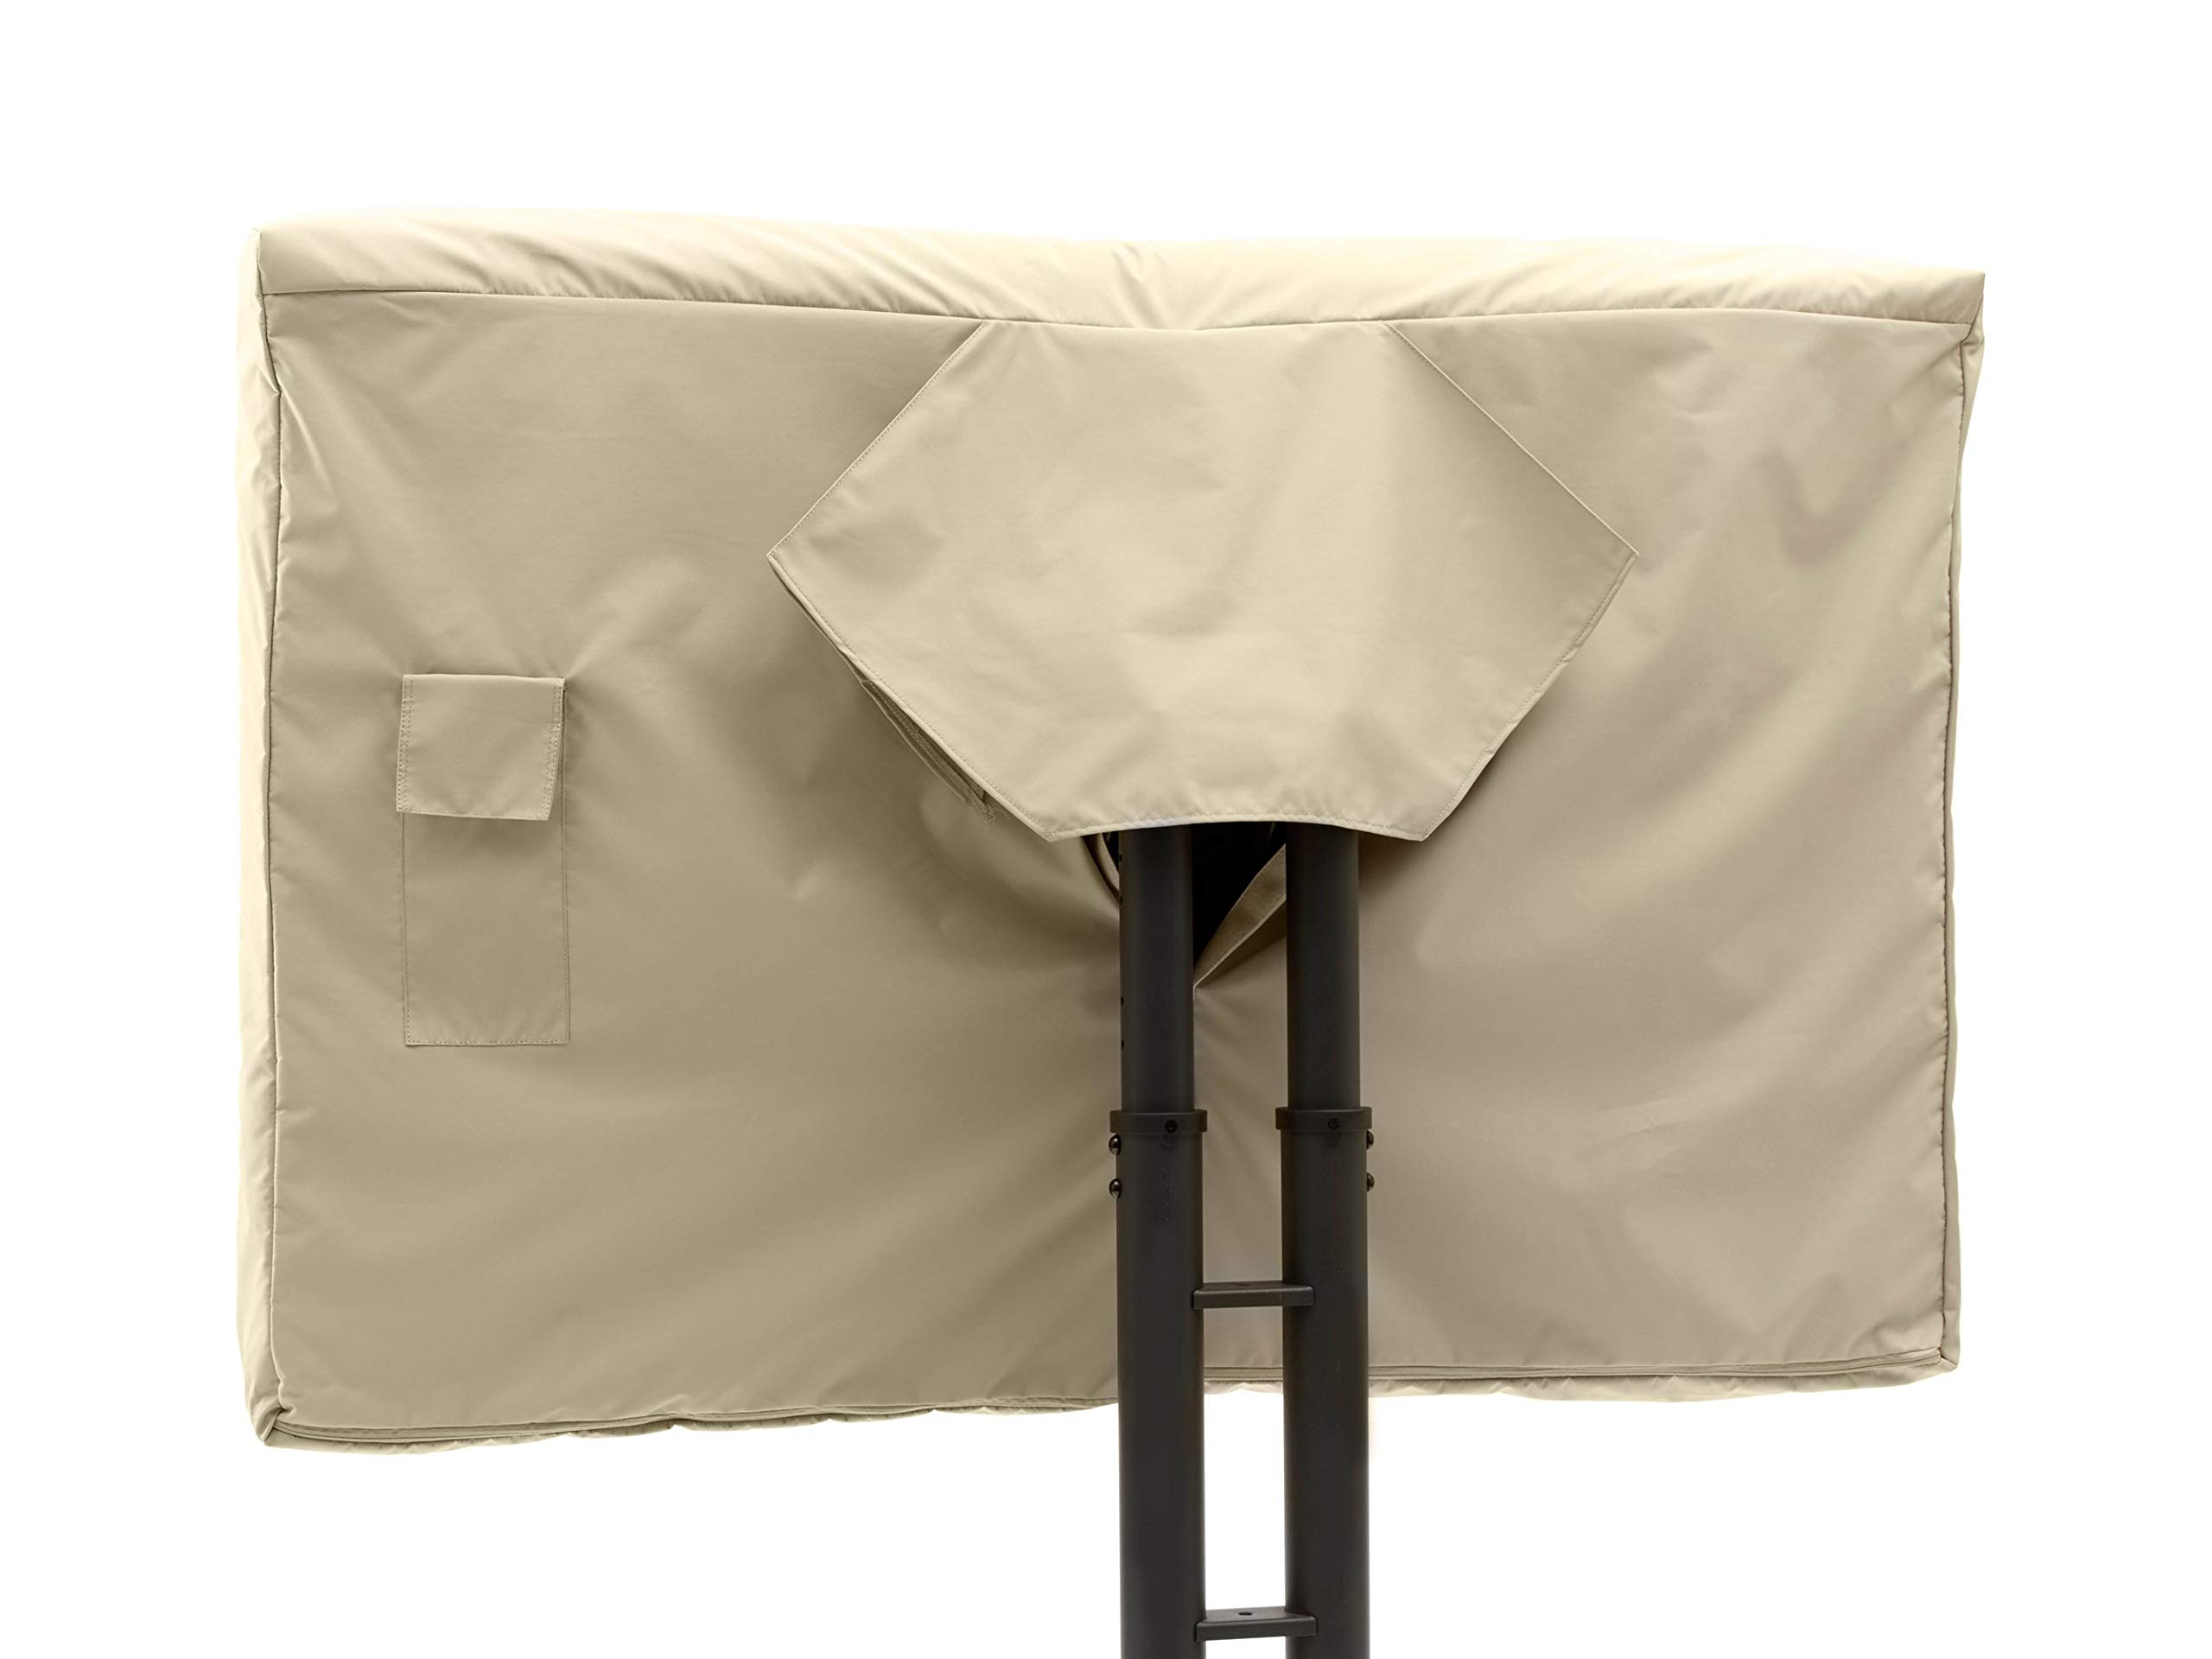 Covermates - Outdoor TV Cover - Fits 55 to 59 Inch TV's - Elite - 300 Denier Stock-Dyed Polyester - Full Coverage - Front Interior Fleece Lining - 3 Year Warranty - Water Resistant - Khaki